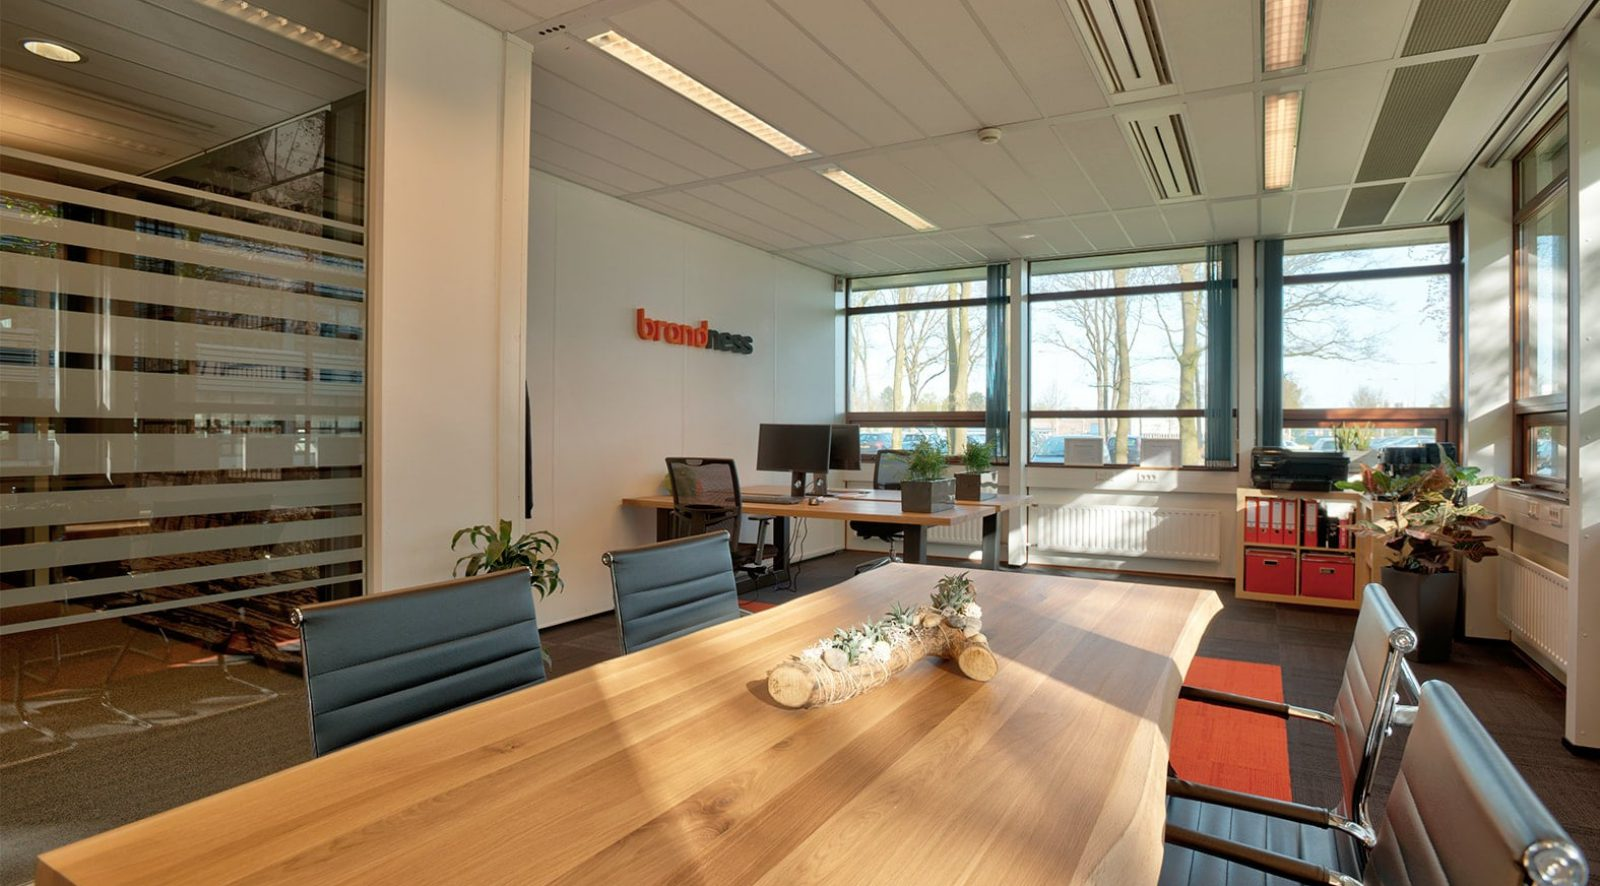 Kantoor huren in Gilze-Rijen | Crown Business Center Gilze-Rijen